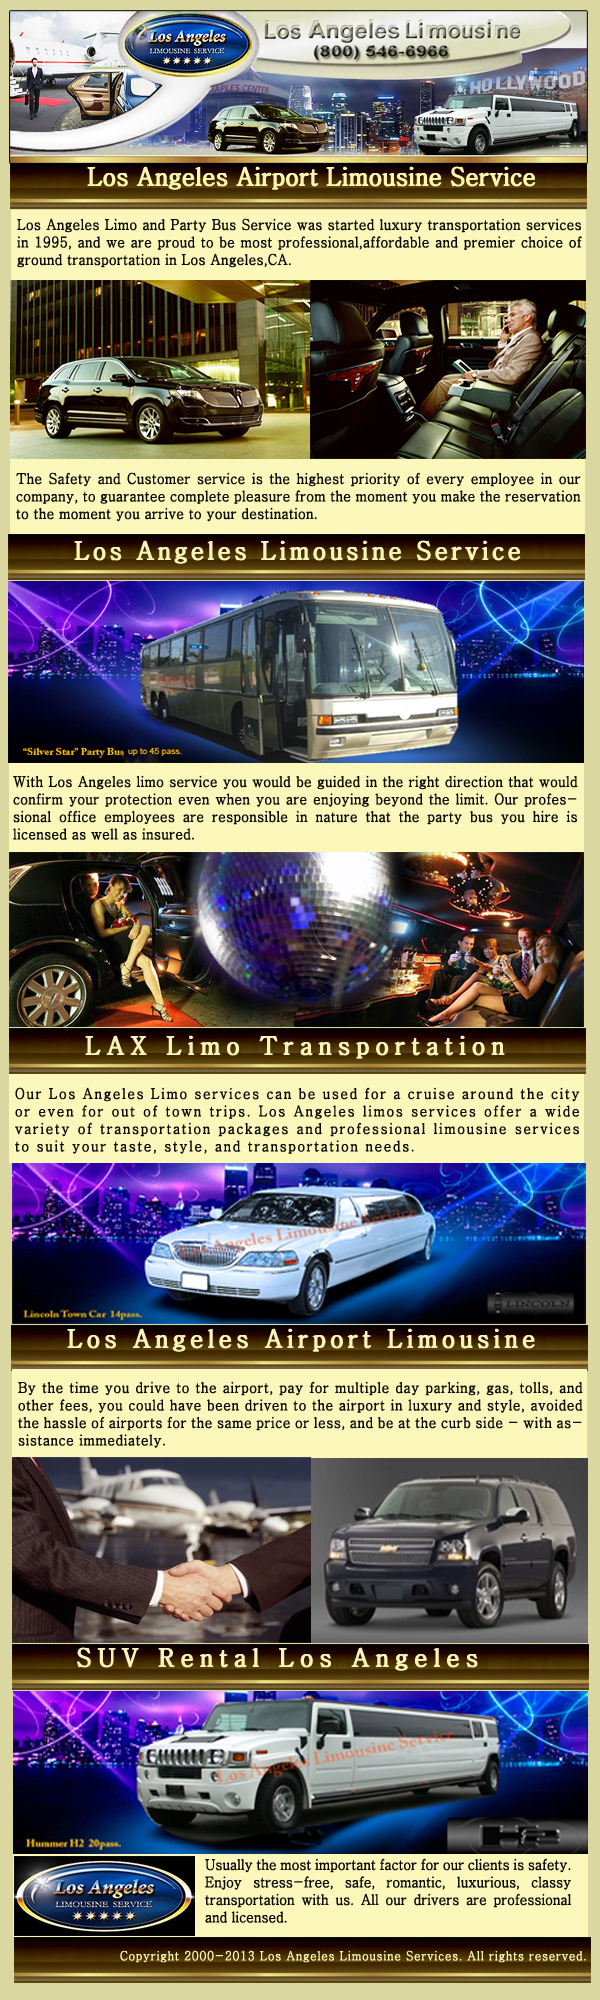 Los Angeles Limo Infographic